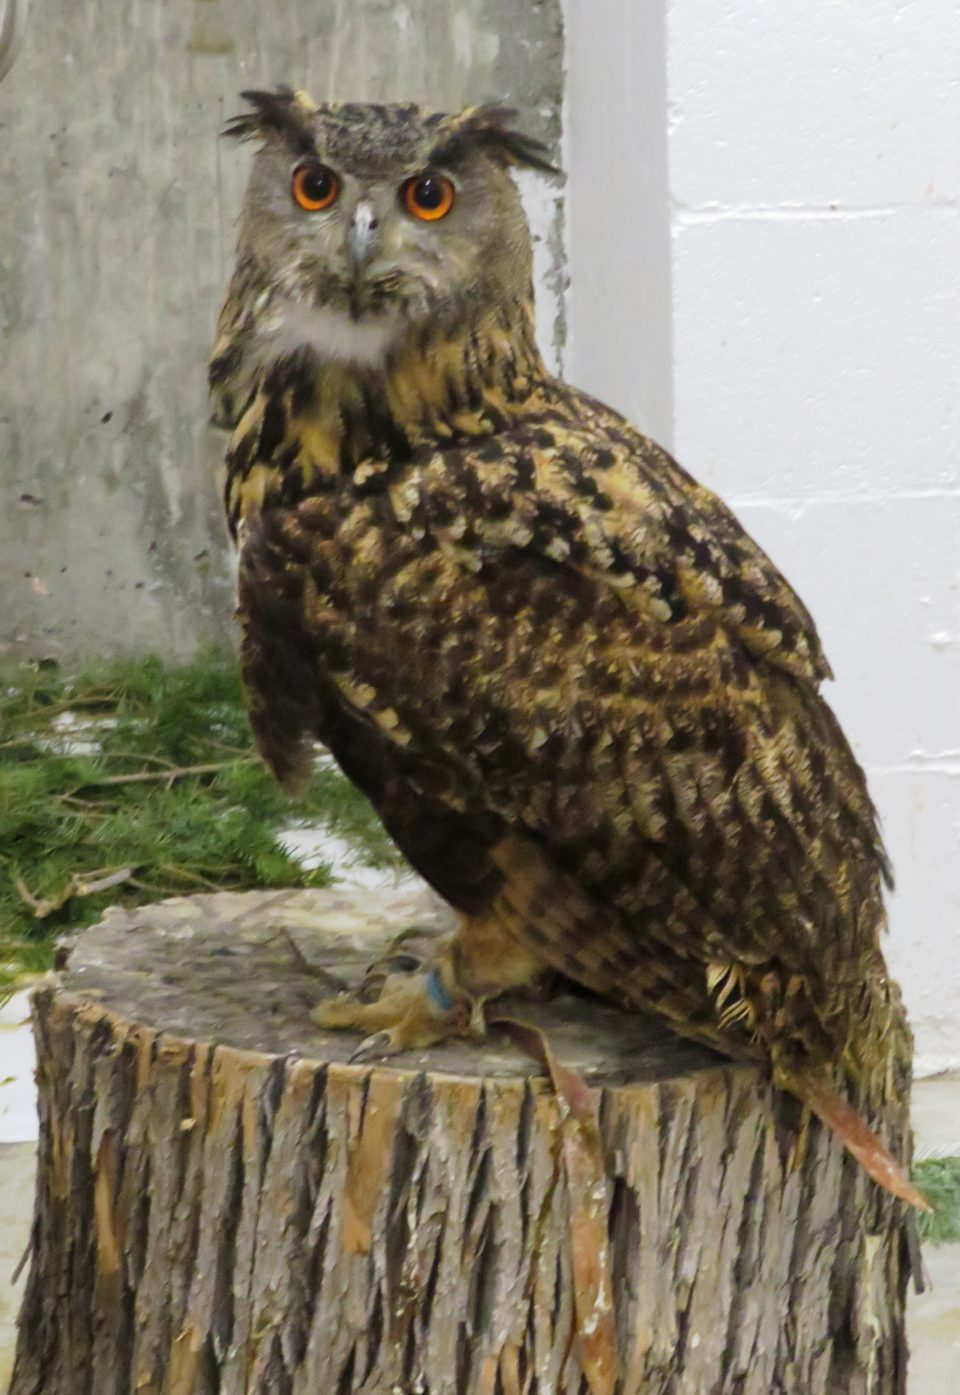 Dalilah, the magnificent and huge Eurasian eagle owl, insisted on meeting us !